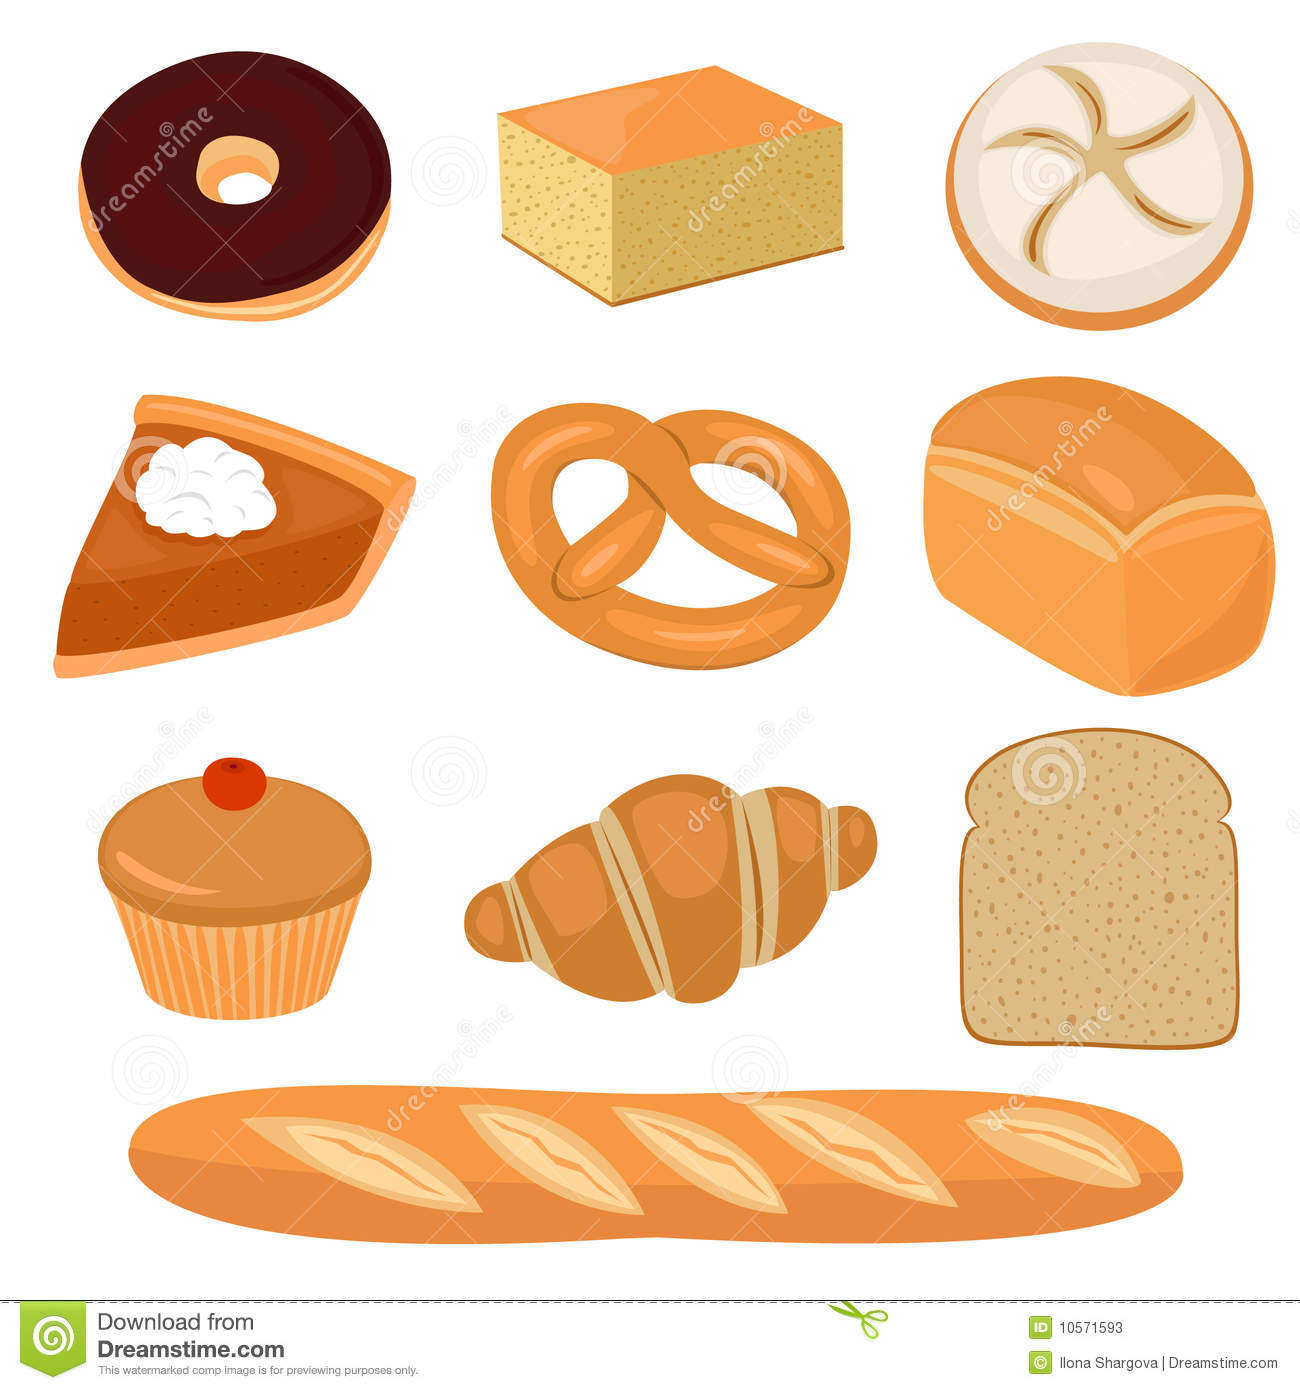 Pastry clipart baked sweet Clipart Pastry Pastry Download Clipart